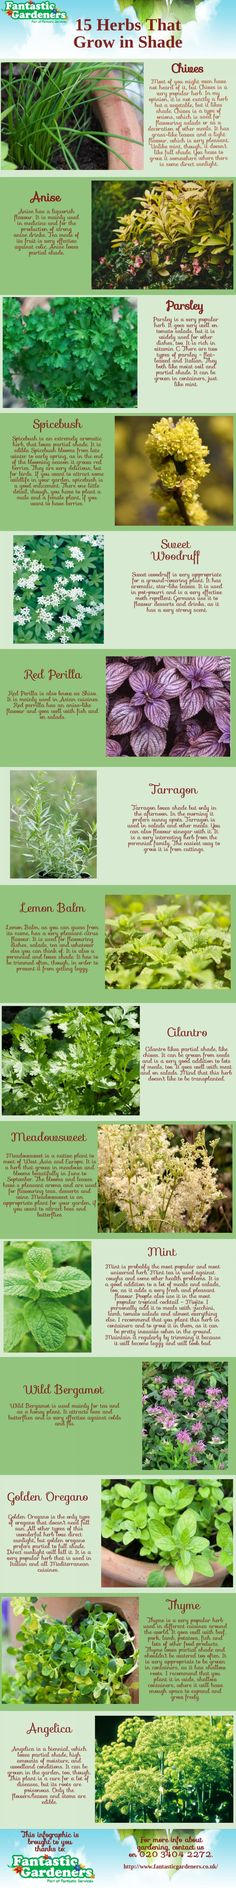 Nice infographic about herbs that grow in shade.